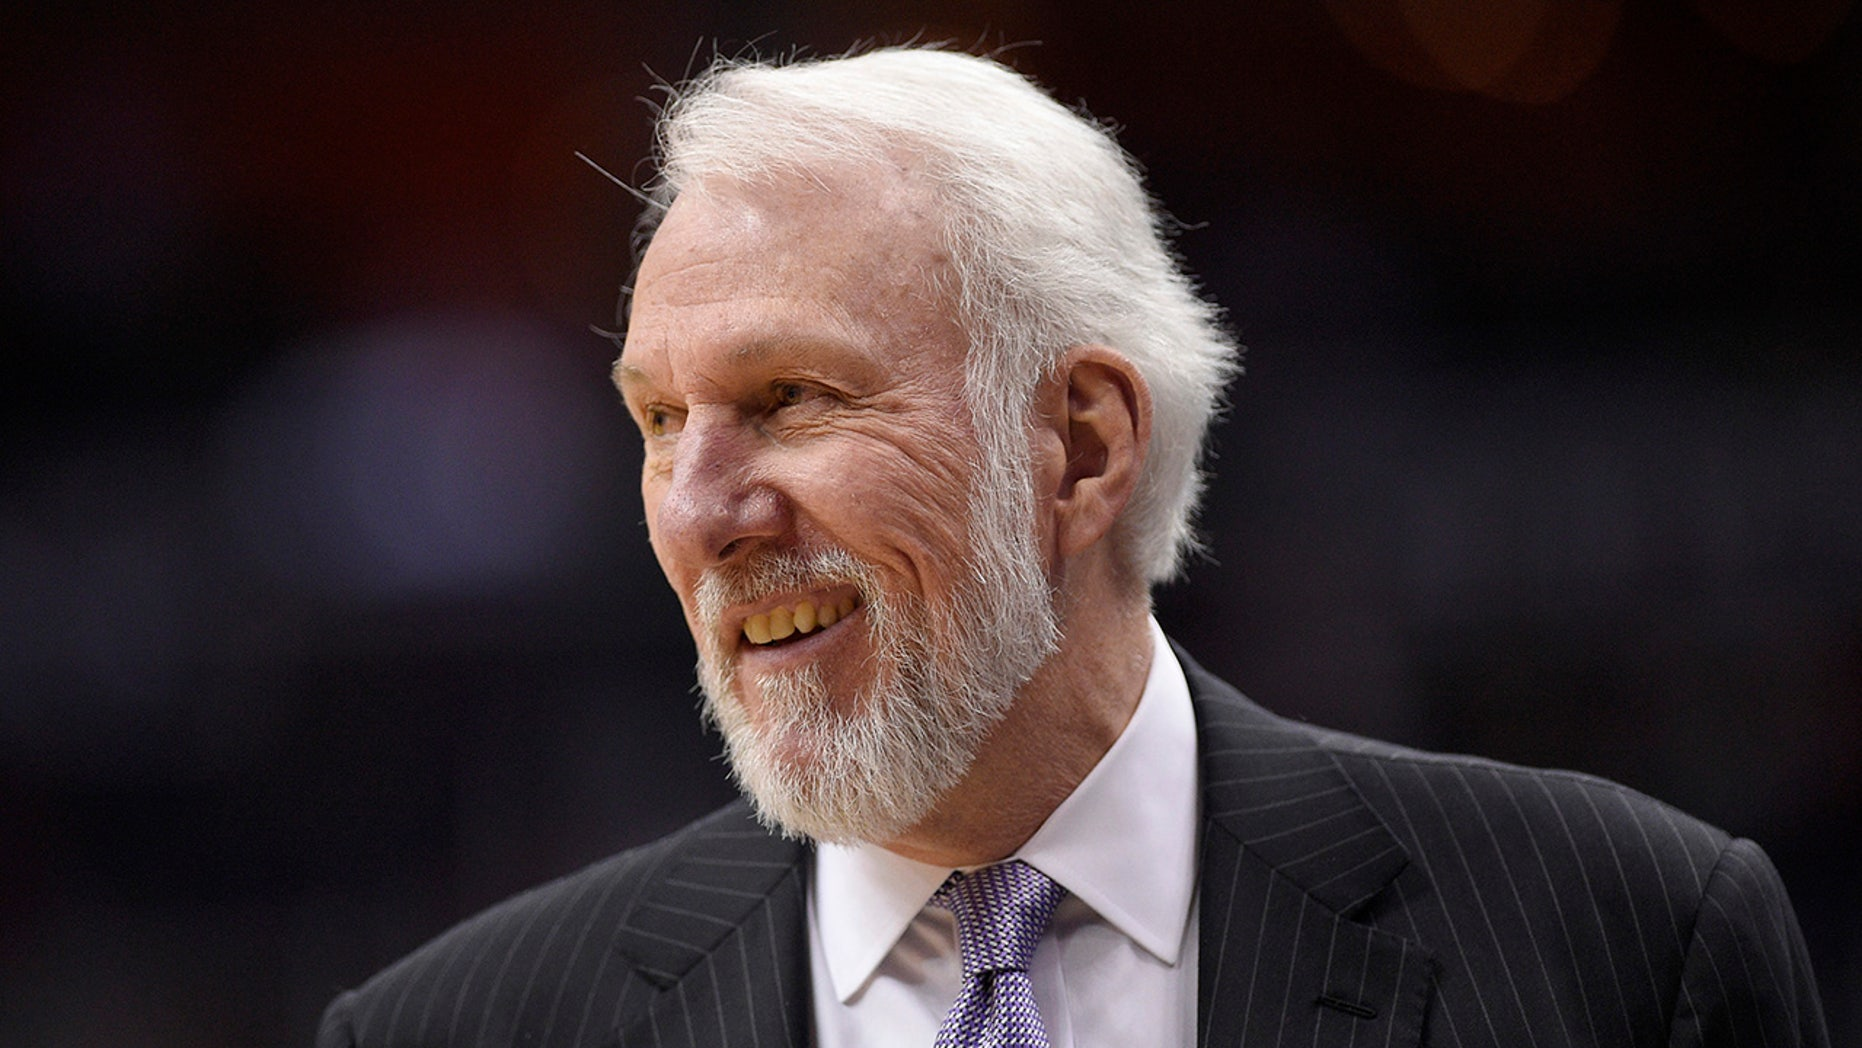 San Antonio Spurs coach Gregg Popovich sounded off on the Second Amendment Tuesday night.